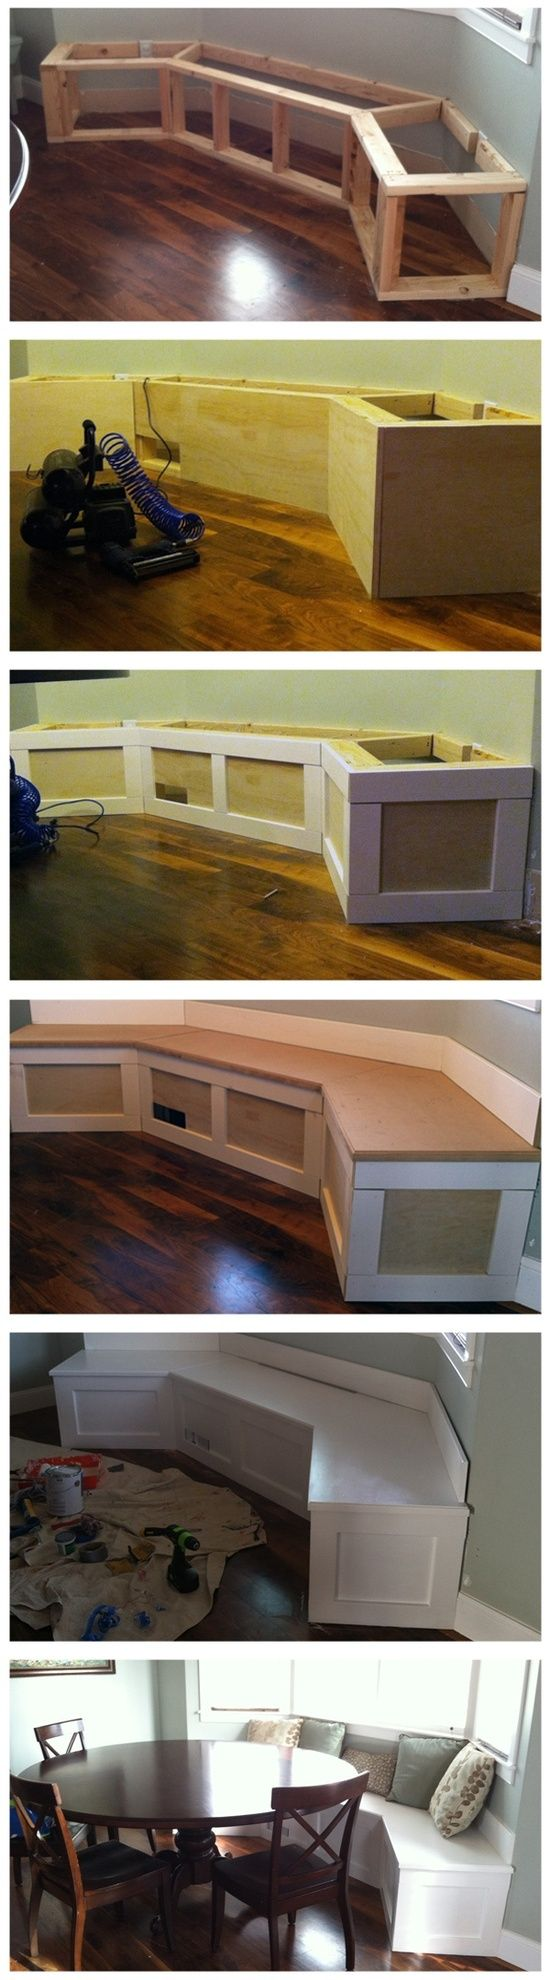 Bay Window Bench seat/storage.  Now if only I could acquire the skills to be that handy